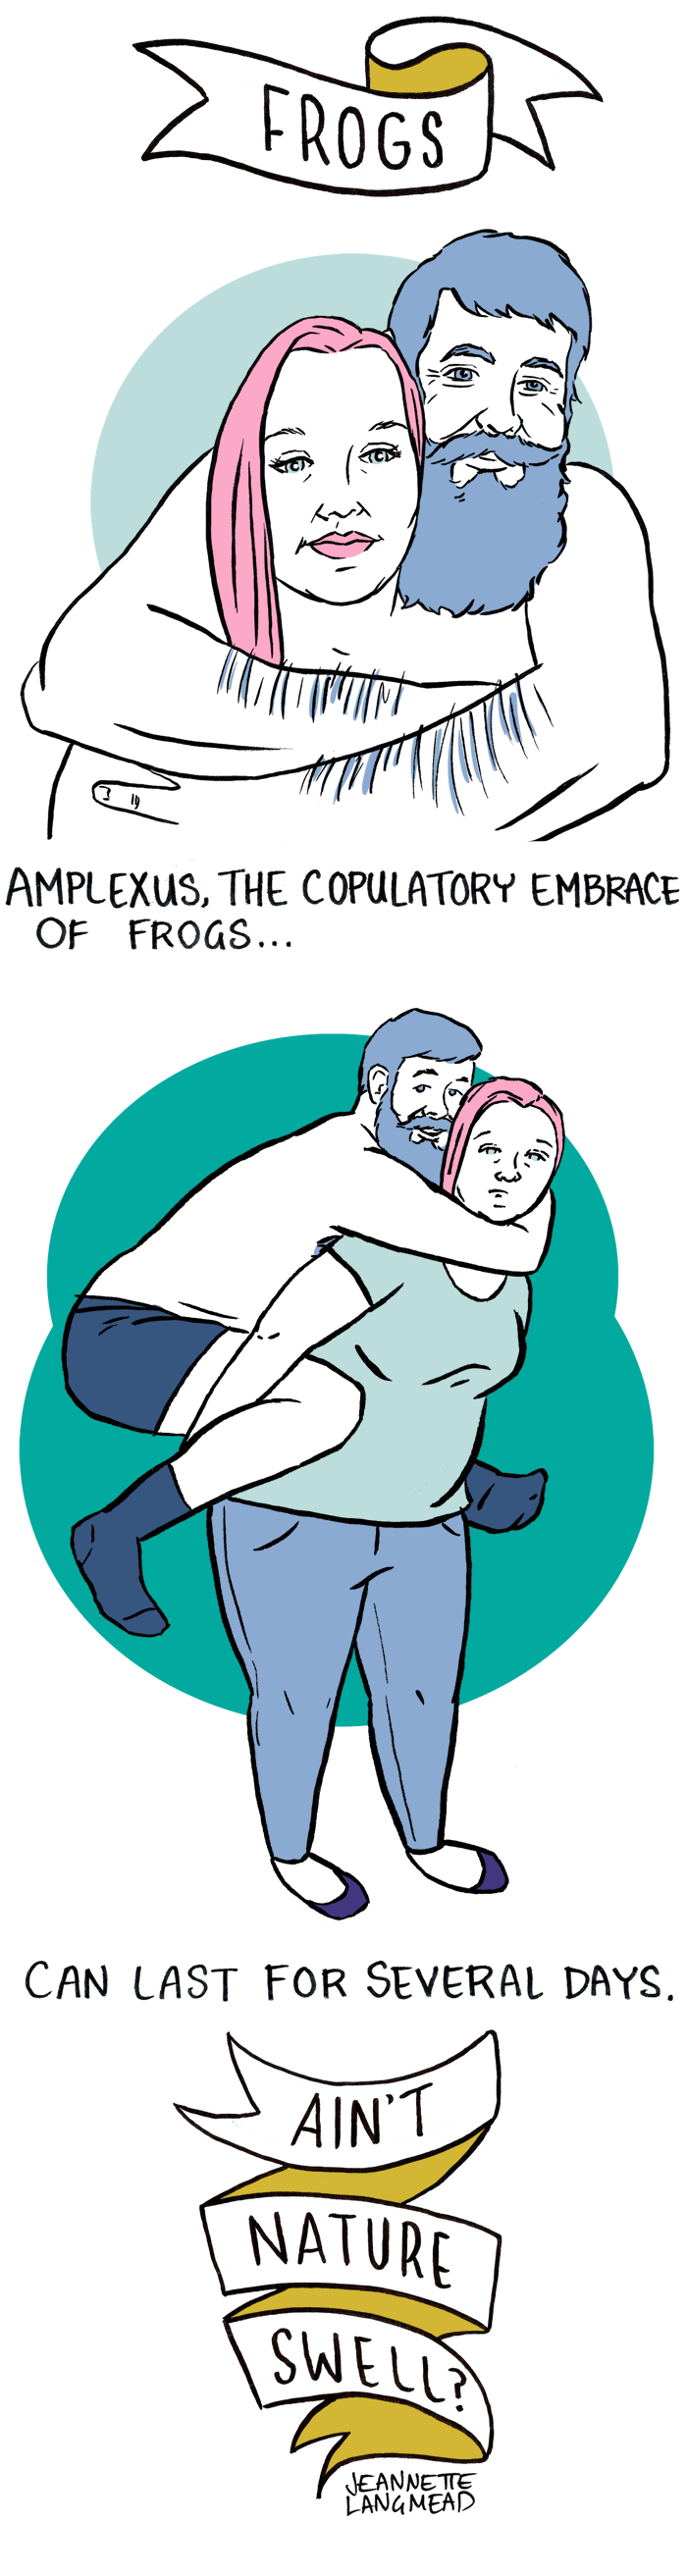 What if humans dated like animals?